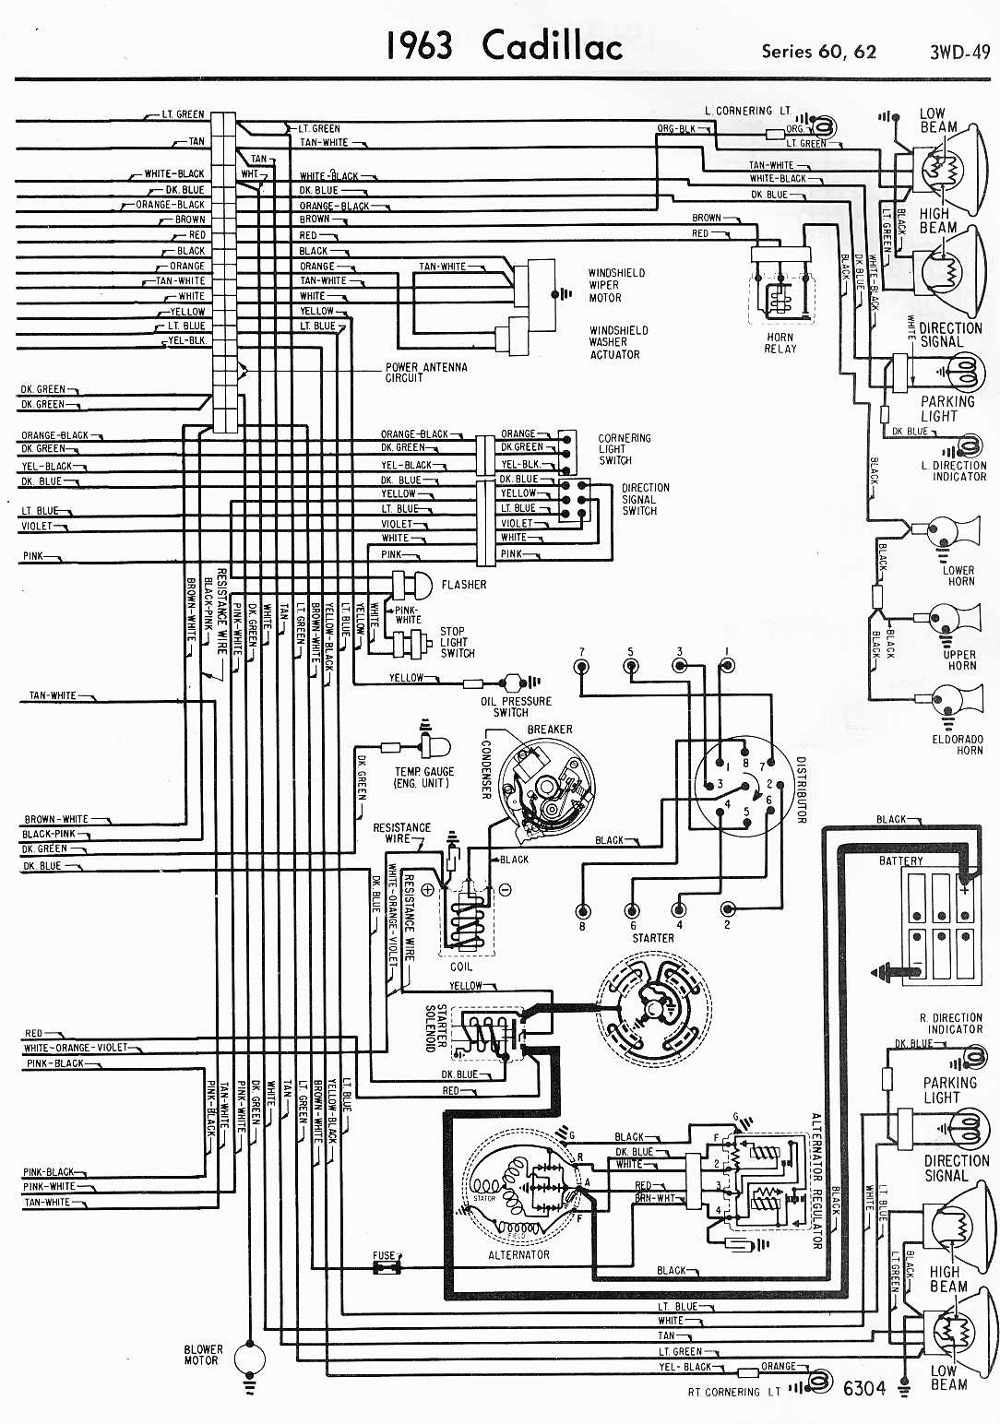 1951 cadillac wiring diagram wiring diagram u2022 rh championapp co Light Switch Wiring Diagram Basic Electrical Schematic Diagrams